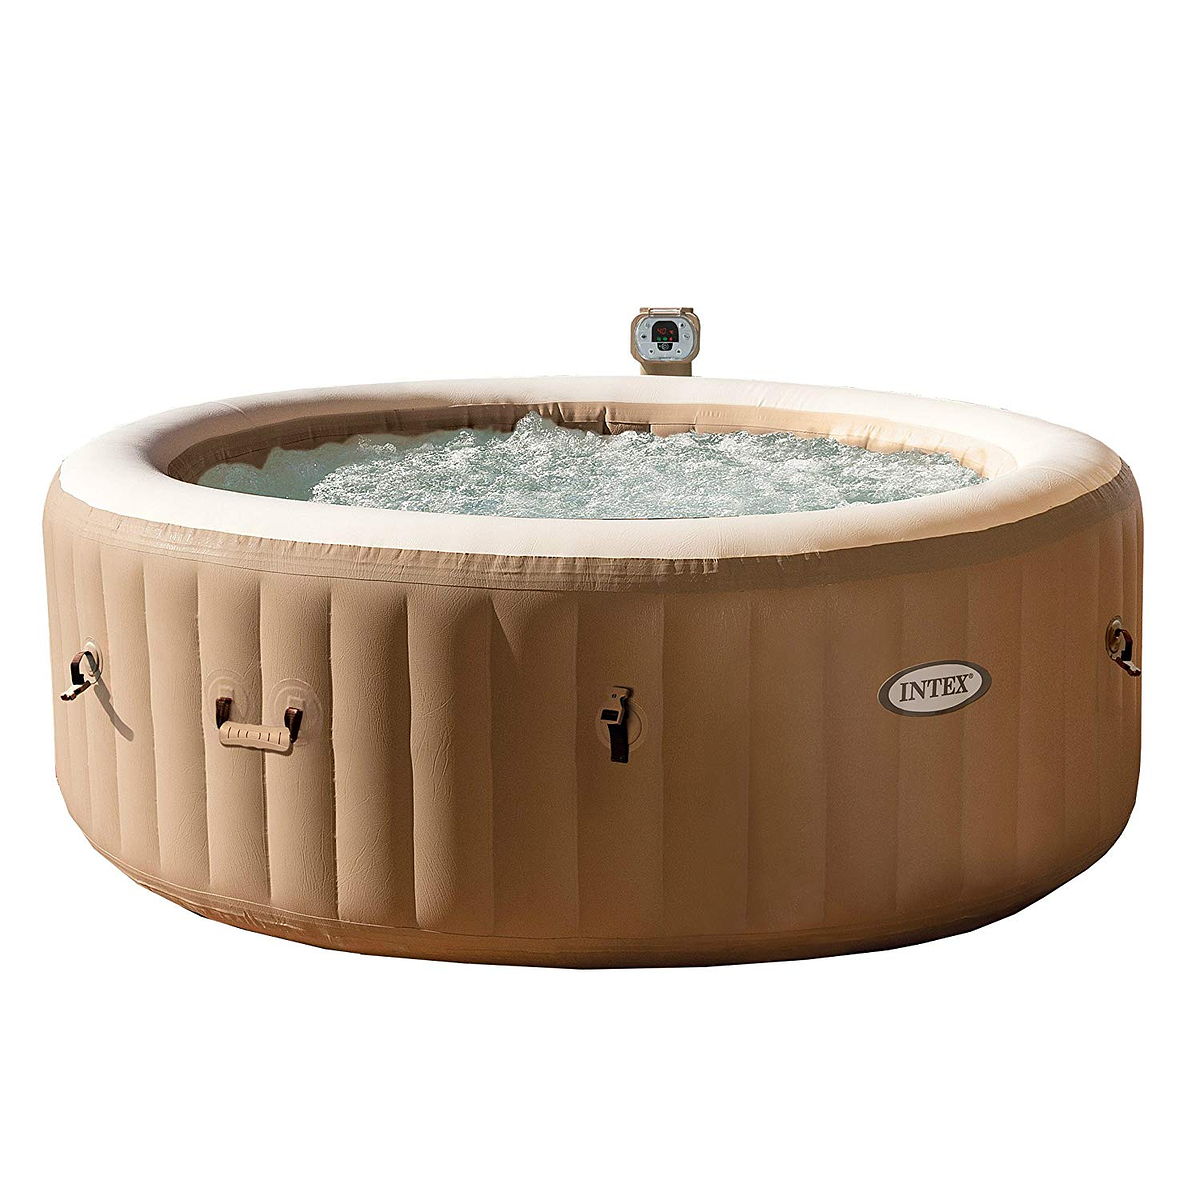 Jacuzzi Inflable Chile.Spa Jacuzzi Inflable Burbujas 4 Personas